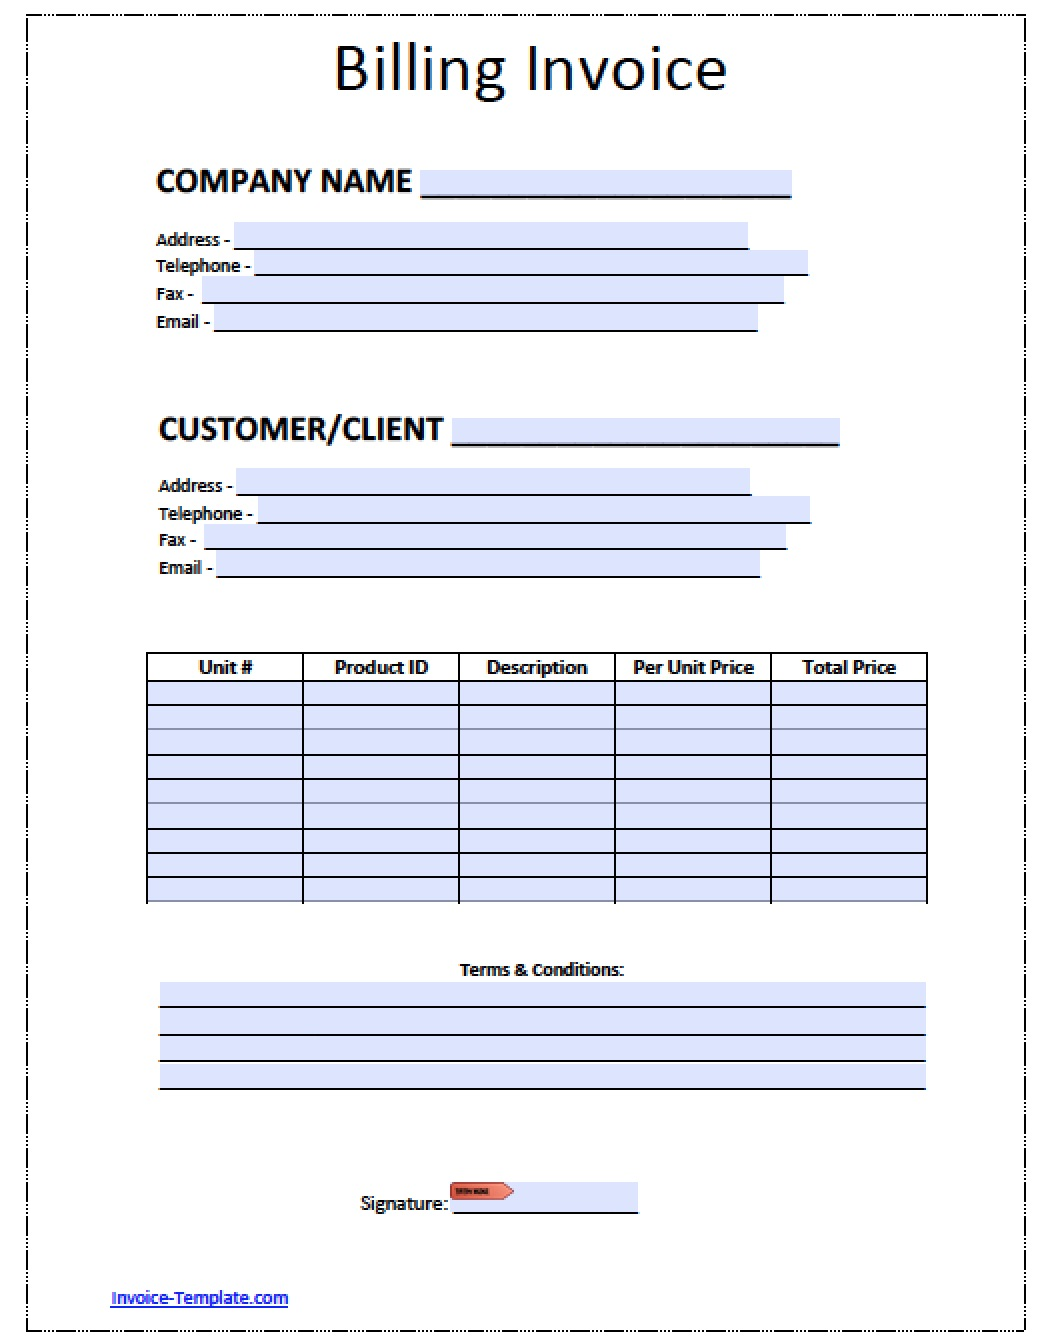 Sample Invoice Bill Alex Annafora Co